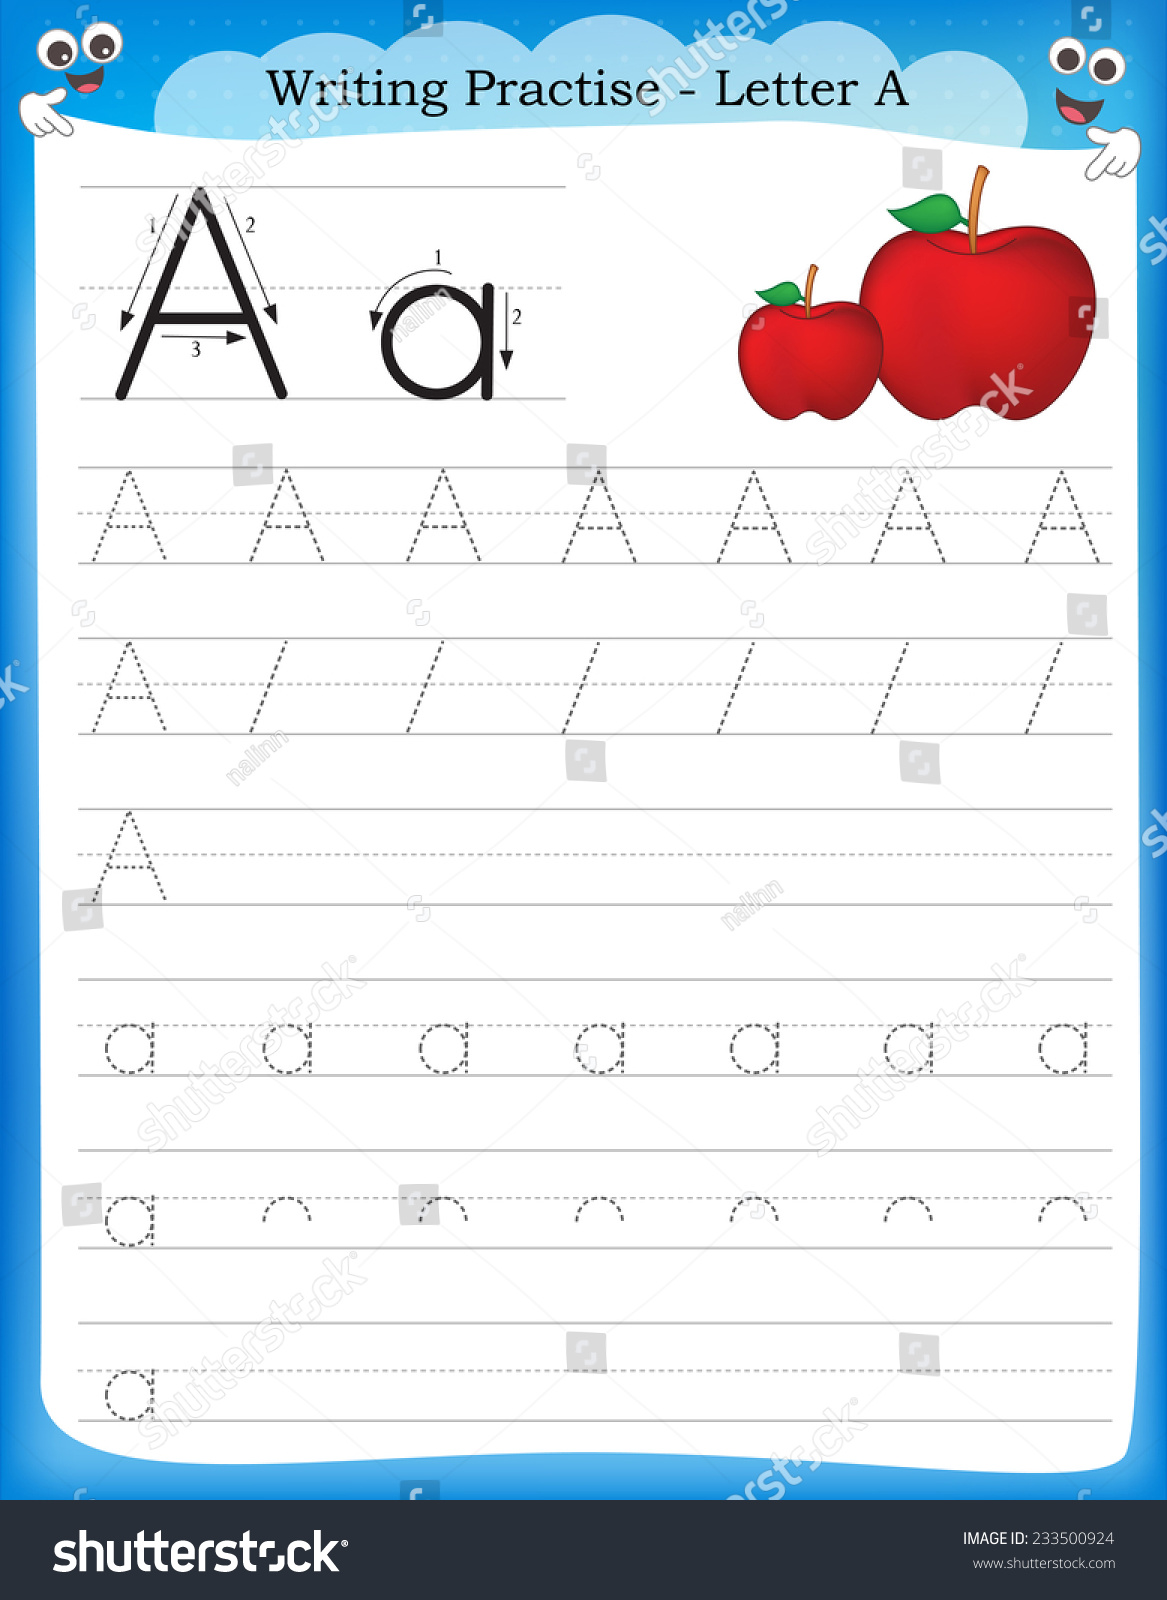 Worksheet Preschool Writing Practice writing practice letter printable worksheet preschool stock vector a for kindergarten kids to improve basic skills